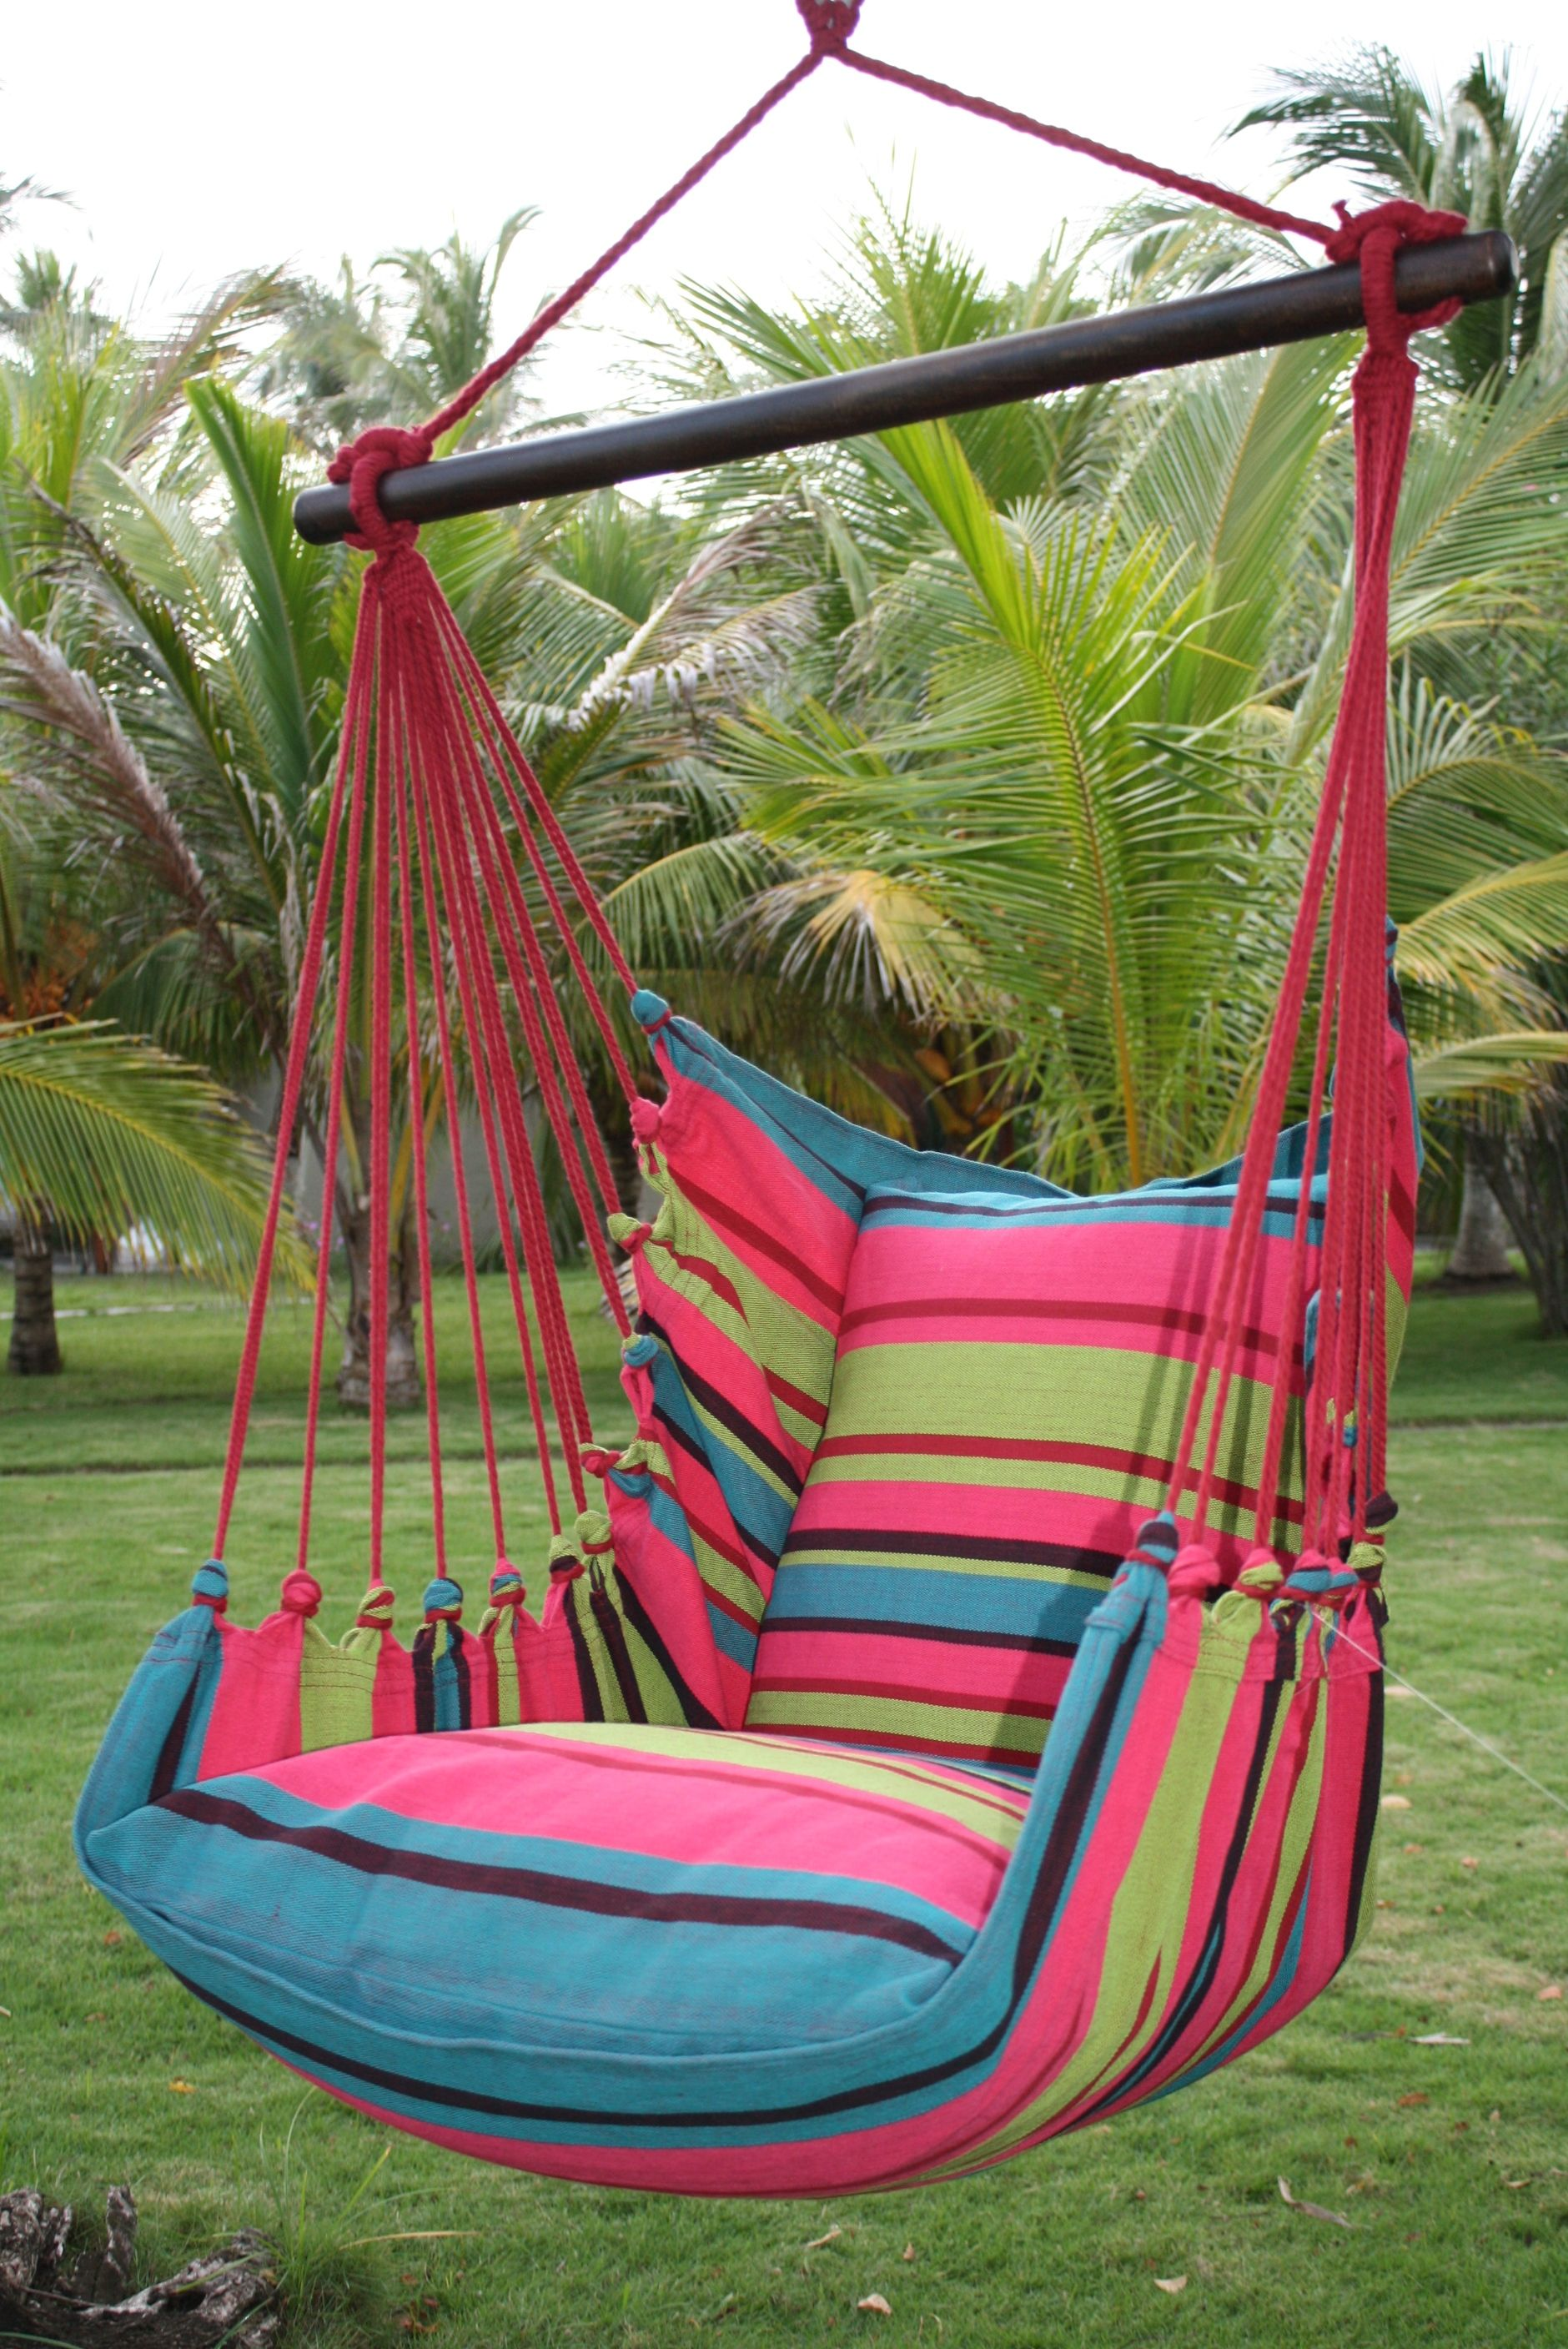 for hanging adjustable fully reviews decent stand frame c state ga chair peculiar hammock lowered sunnydaze